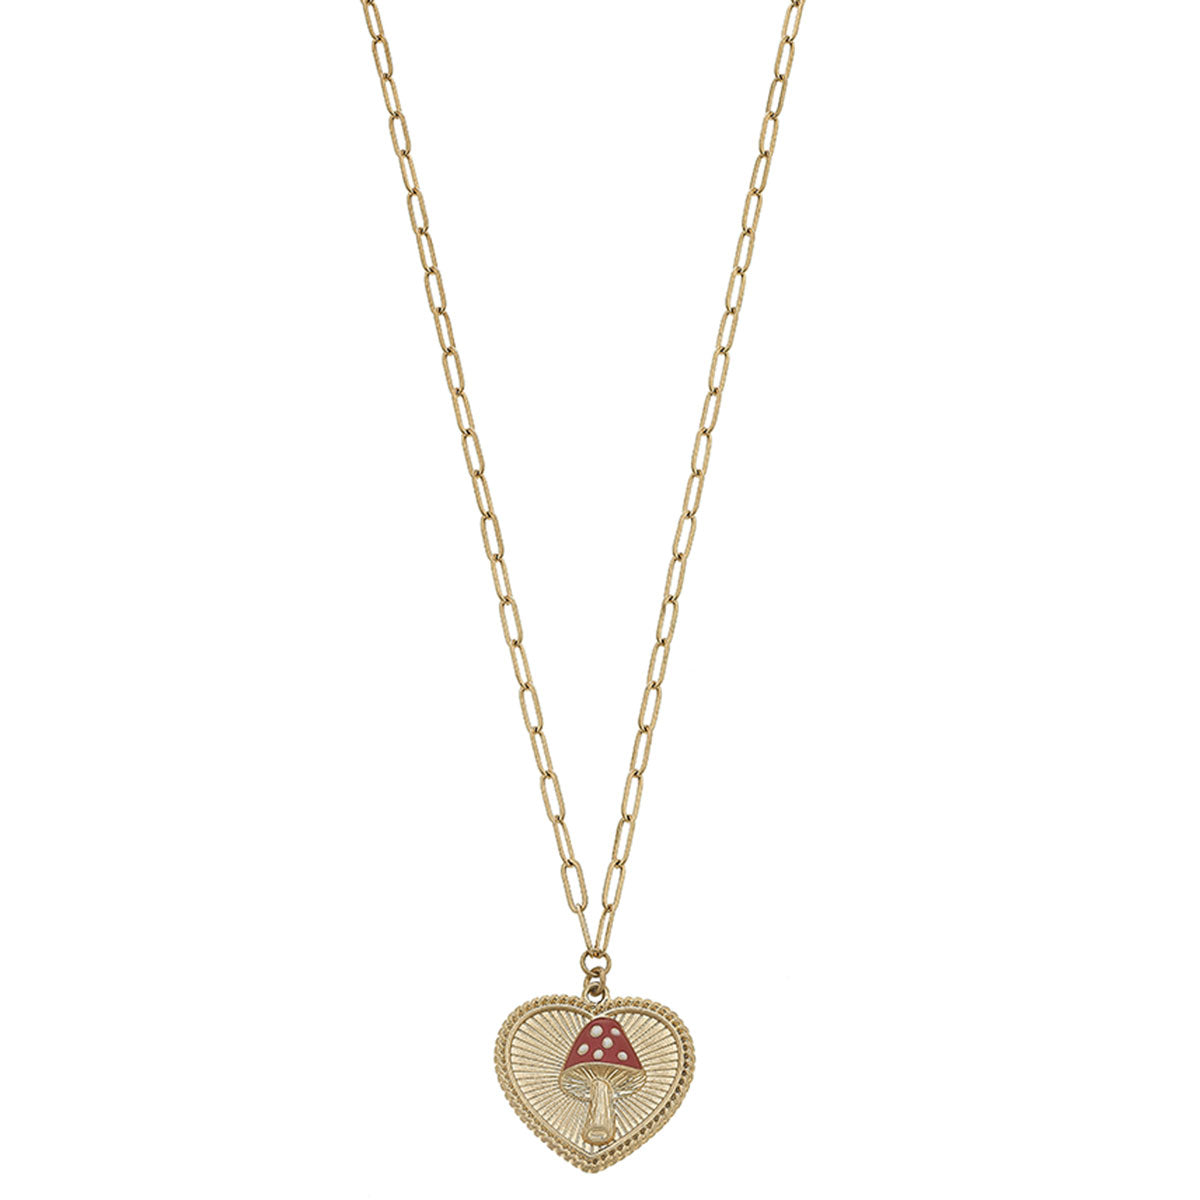 Aubrey Mushroom Heart Charm Necklace in Worn Gold